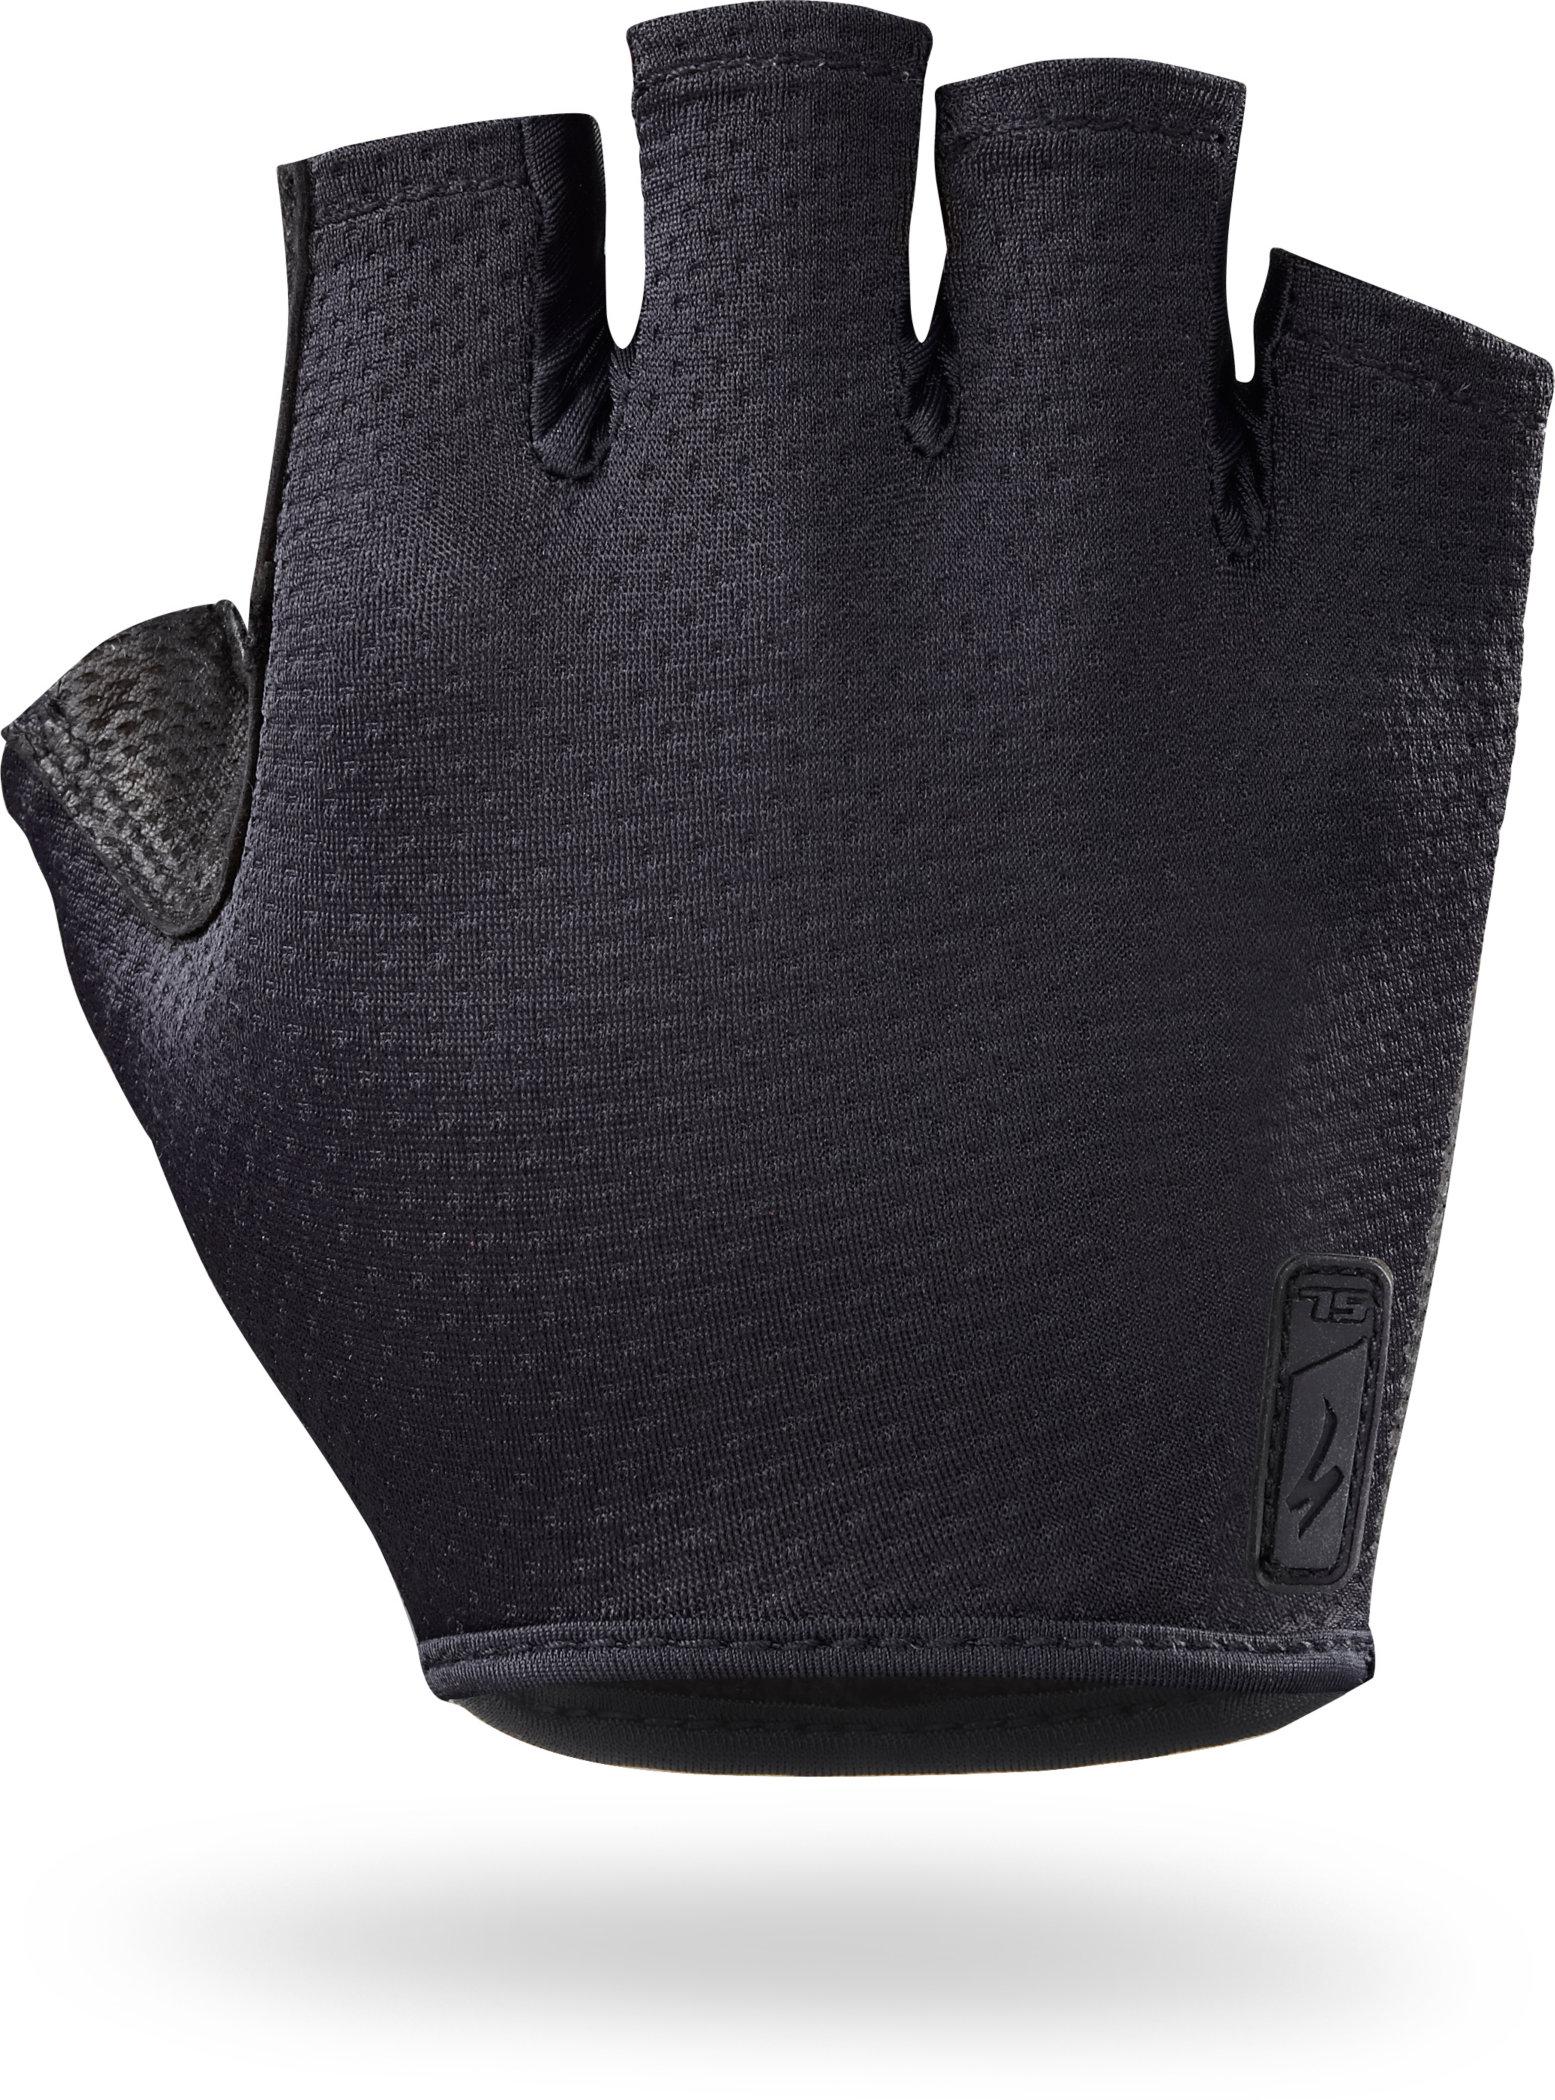 SPECIALIZED SL PRO GLOVE SF BLK L - Alpha Bikes